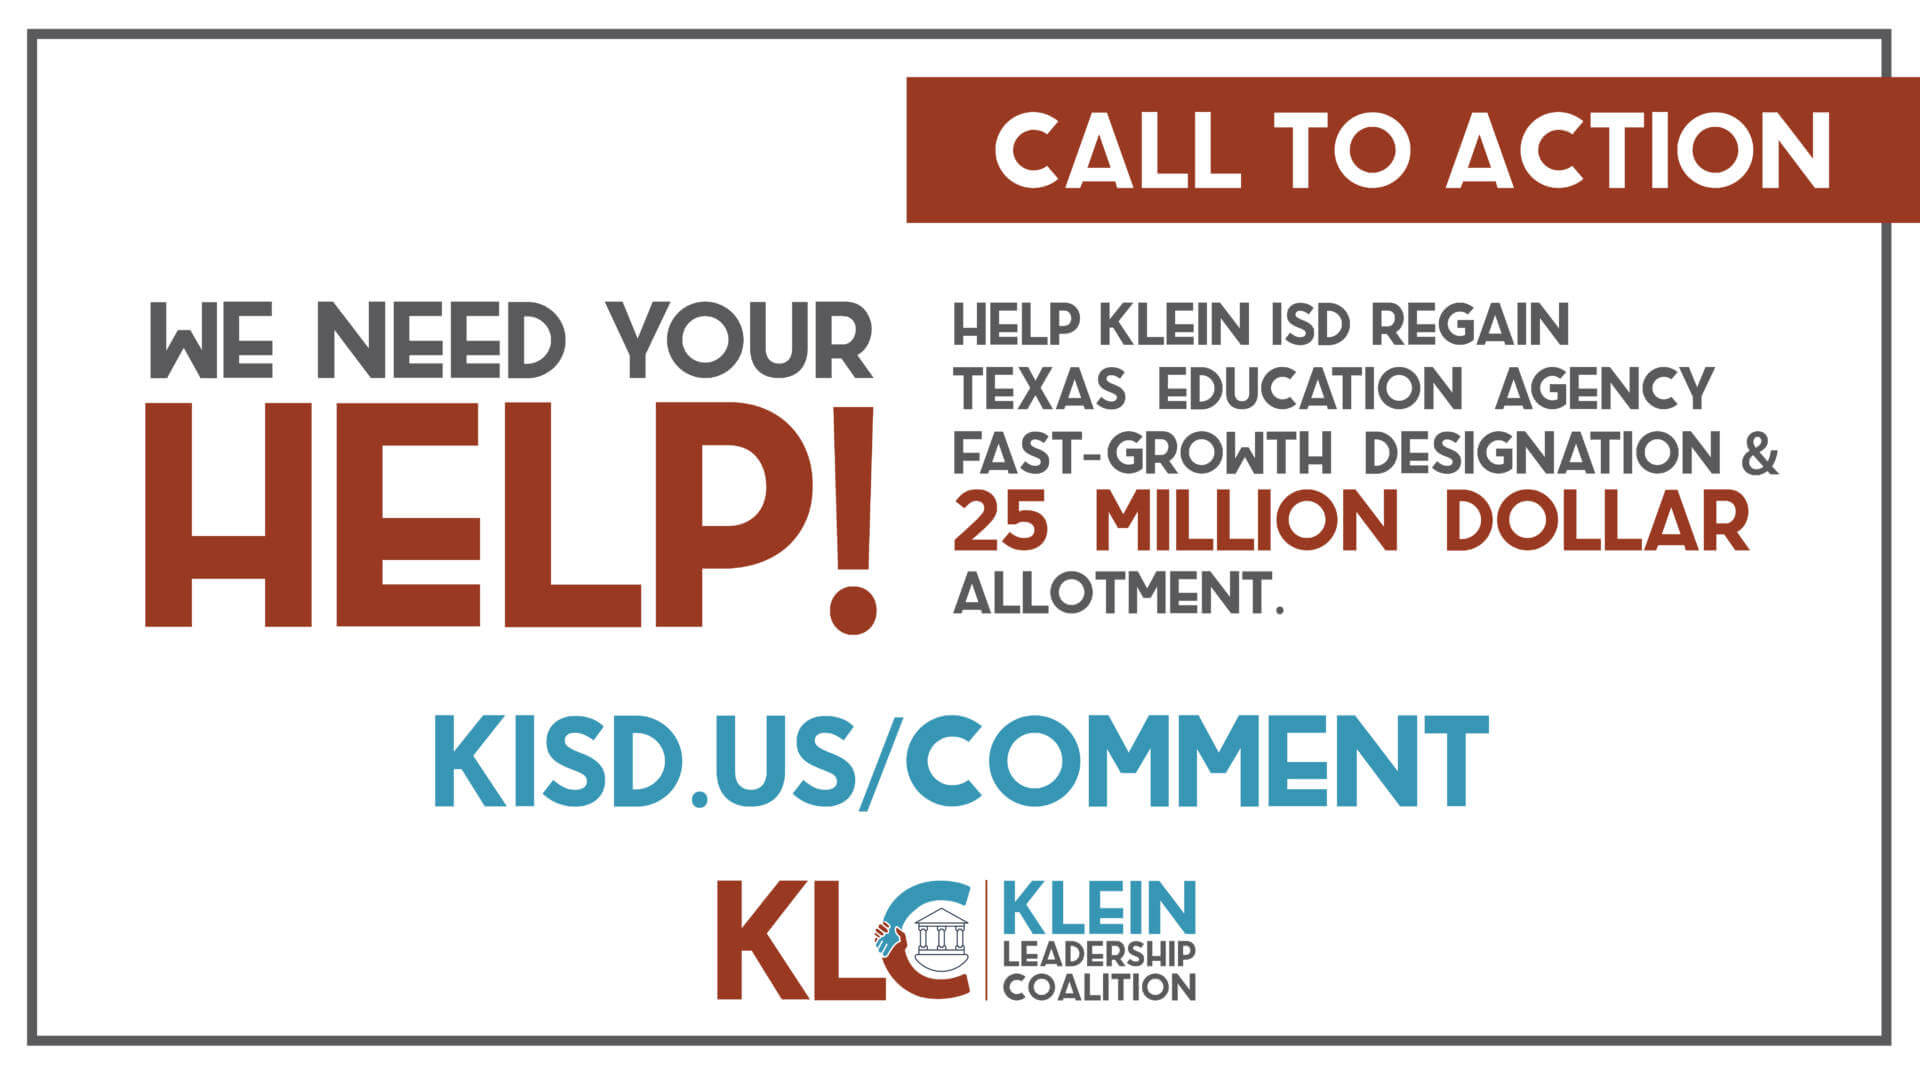 Help Klein ISD Stay a Fast-Growth School District and Receive $25 Million Allotment